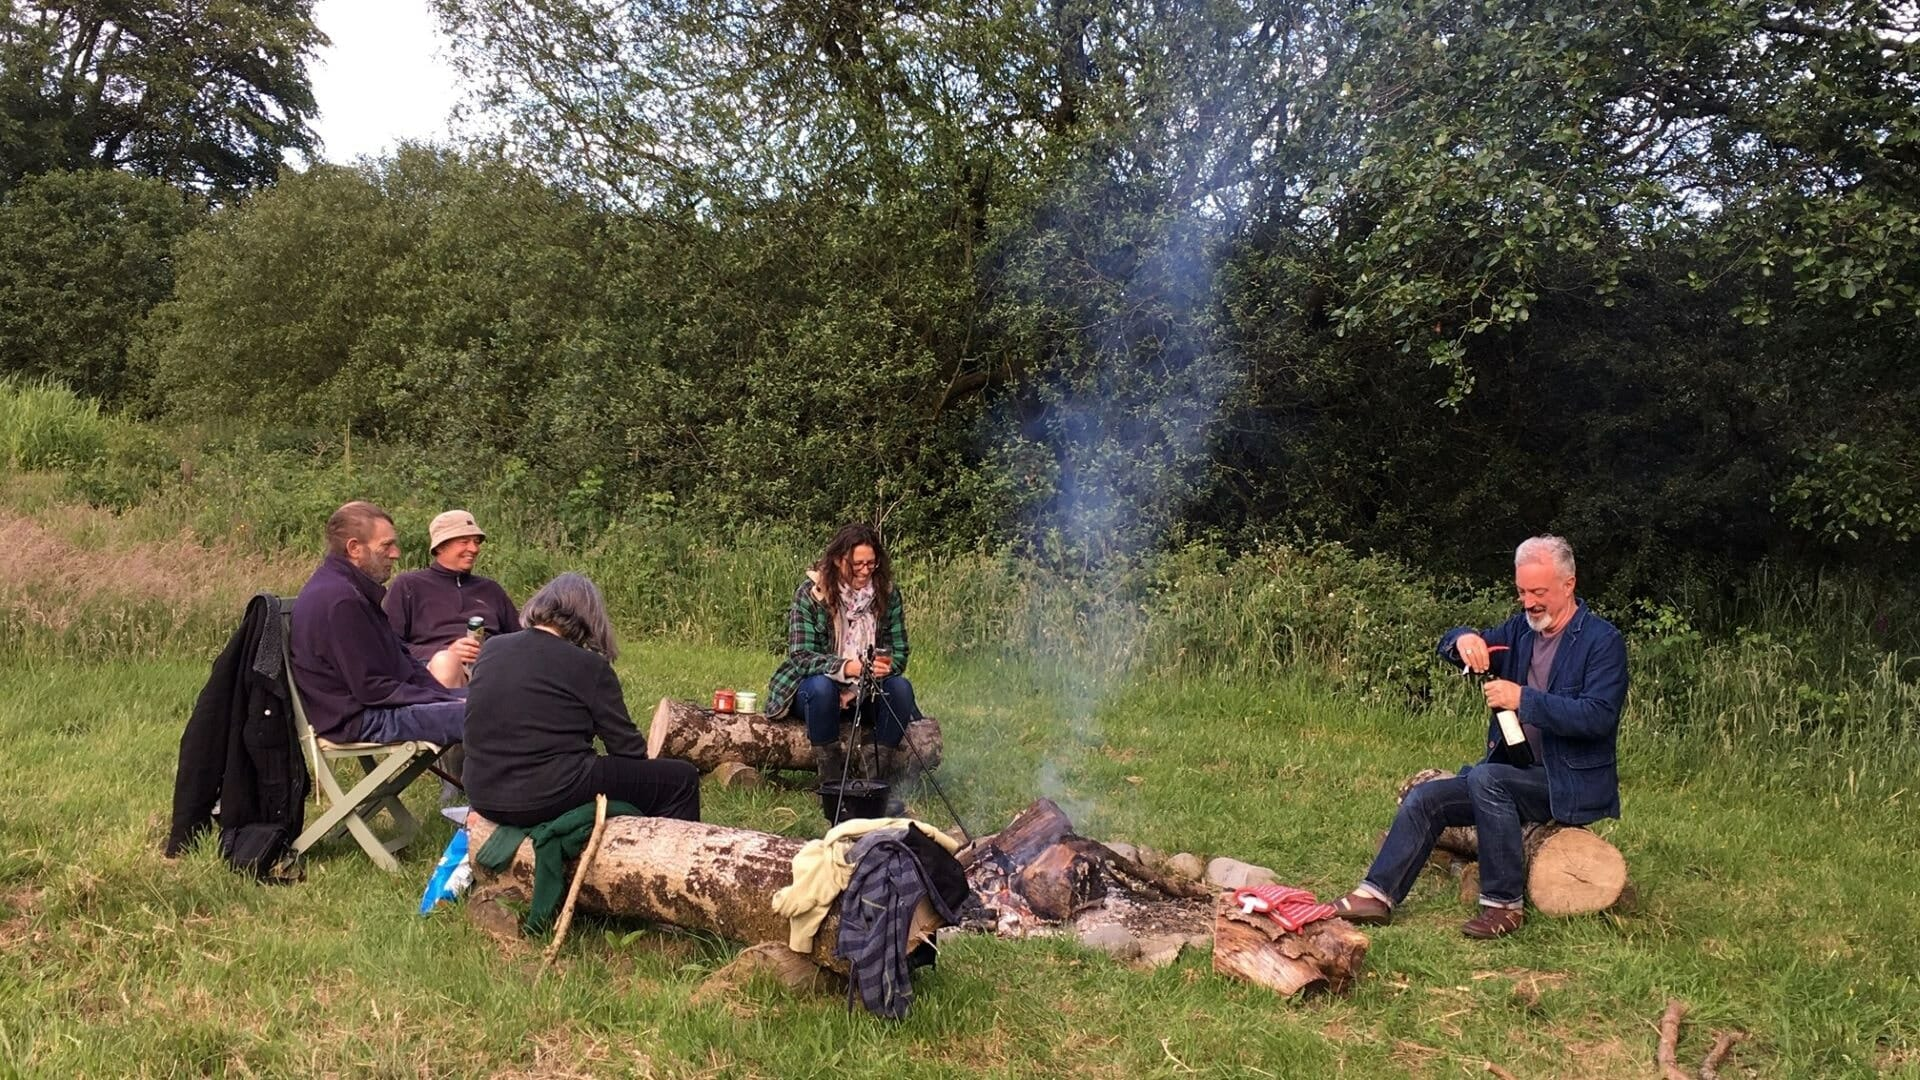 Fire pit at Banceithin - group picture